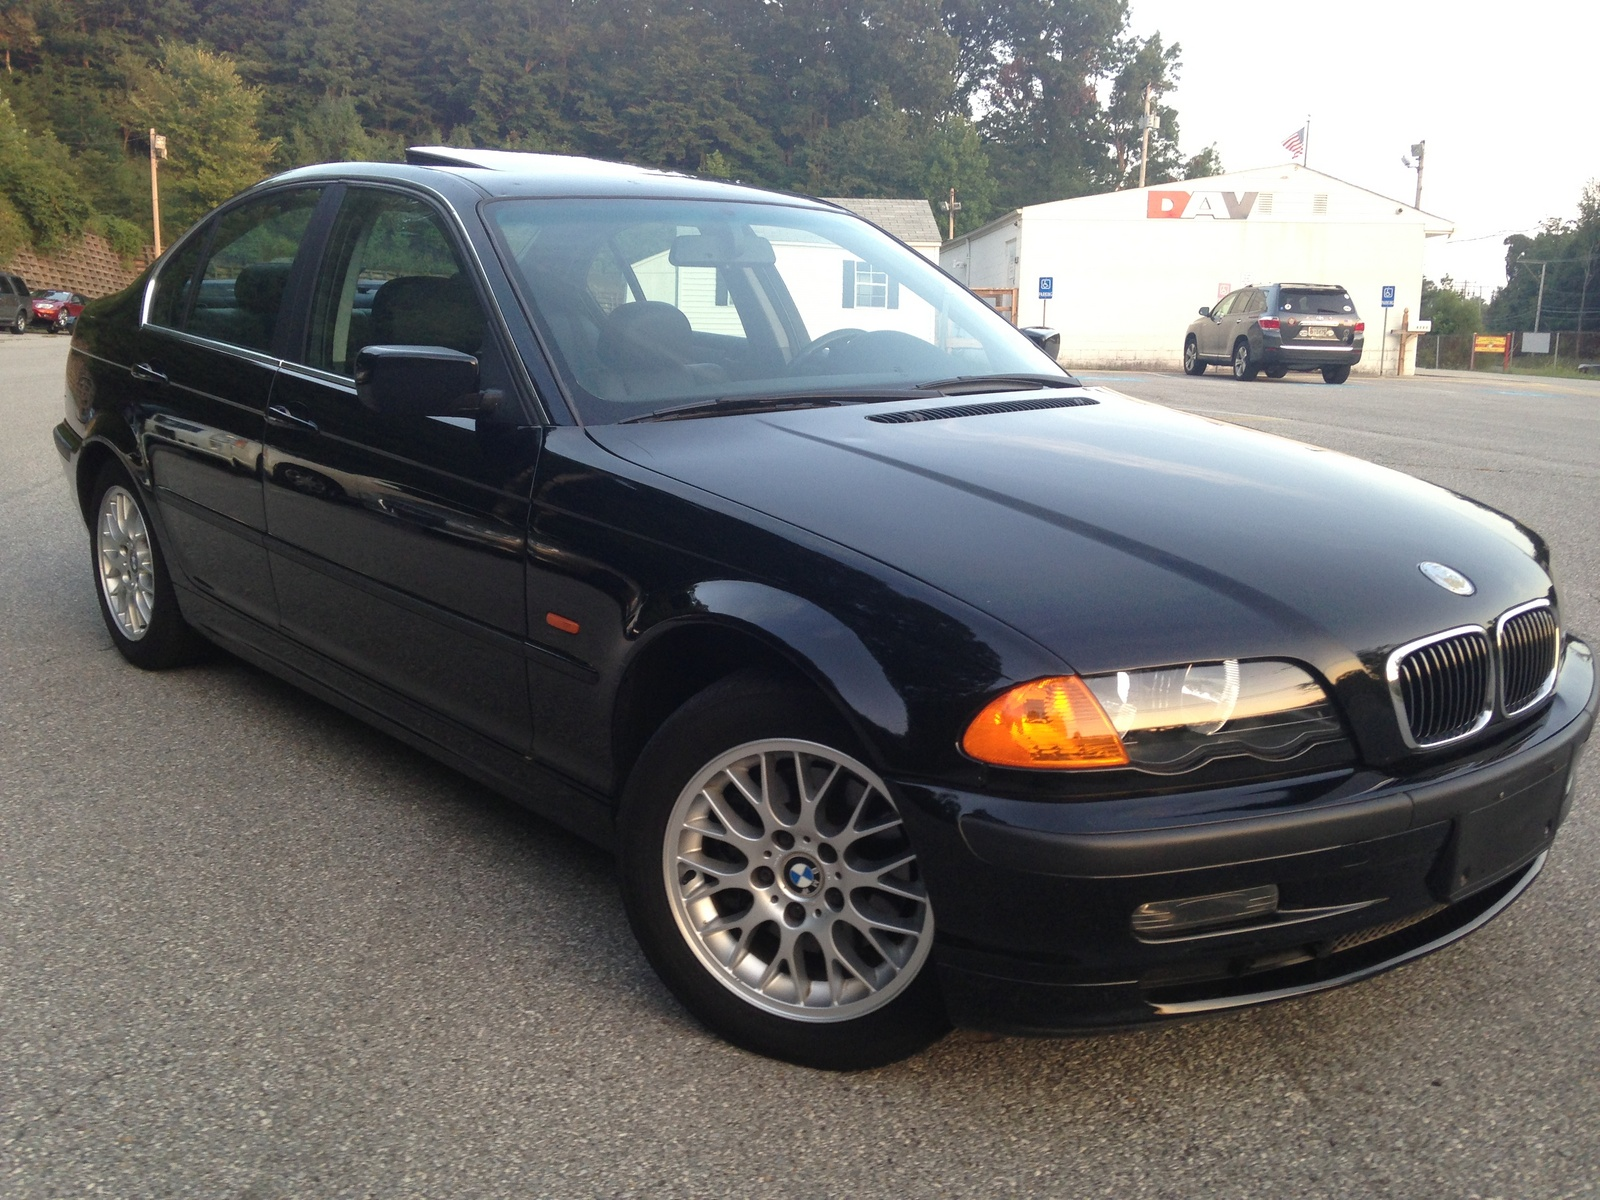 BMW 3 series 325i 2000 photo - 10